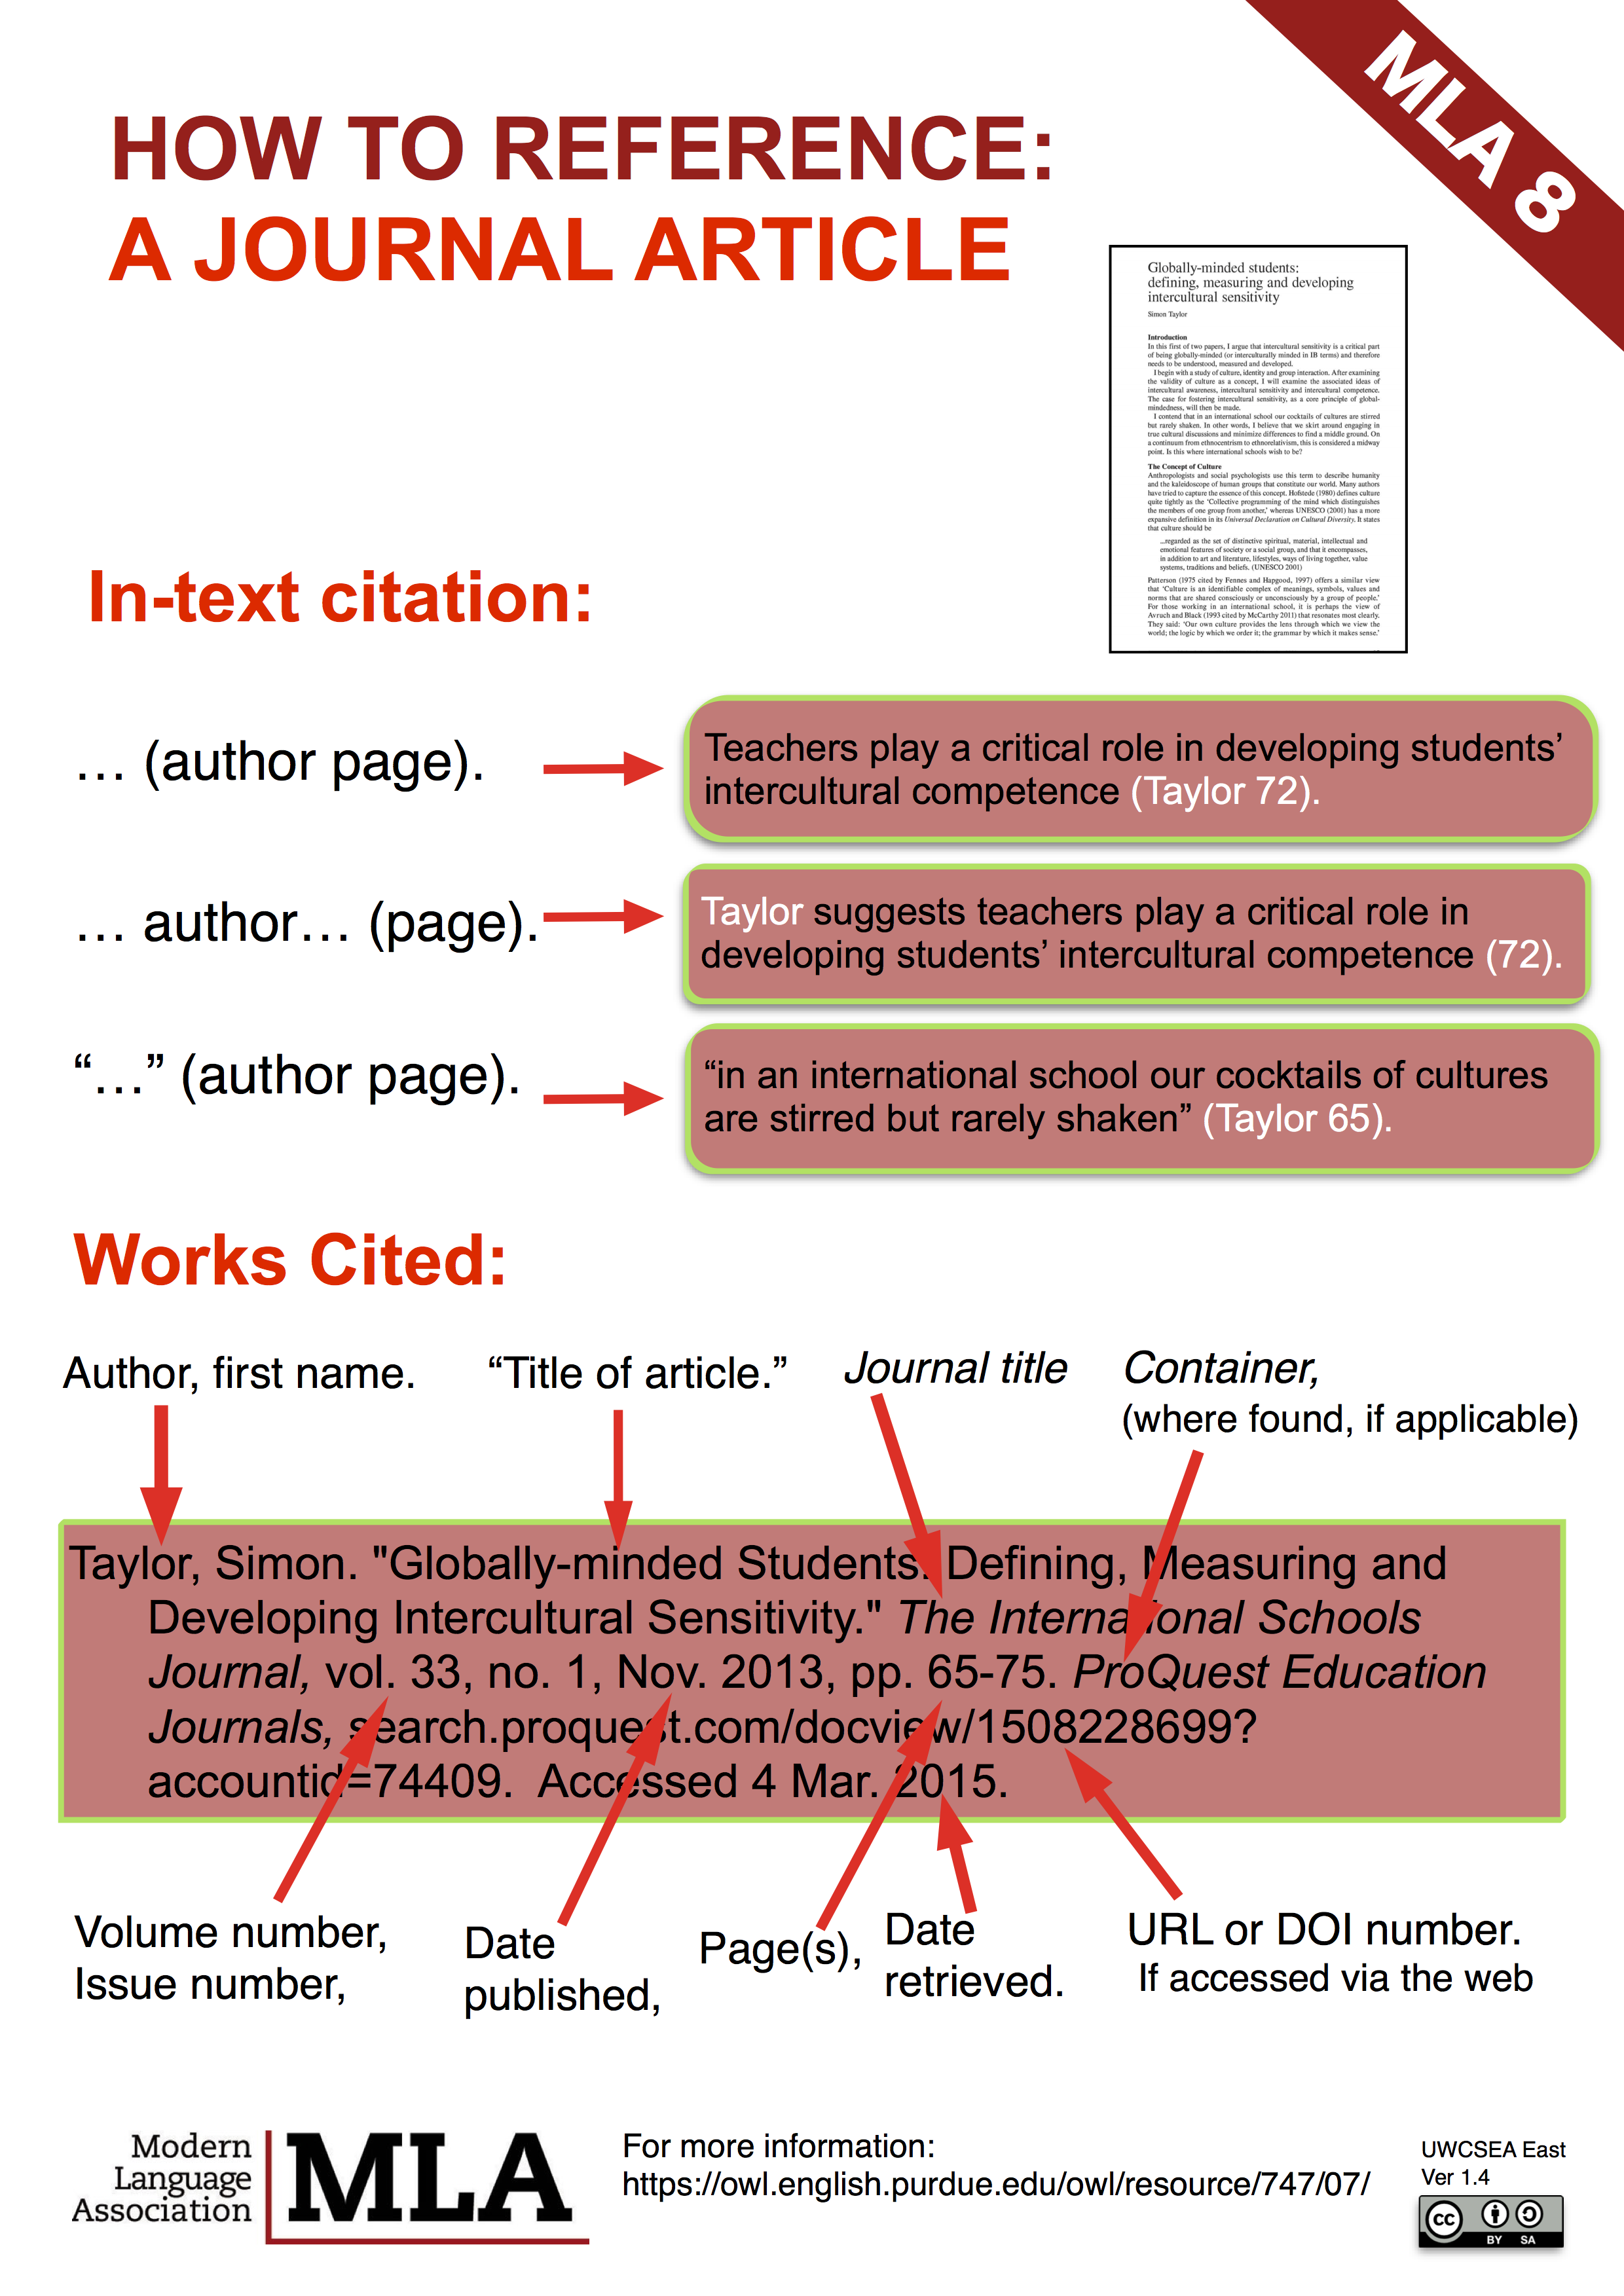 Mla8 Journal Article How To Cite